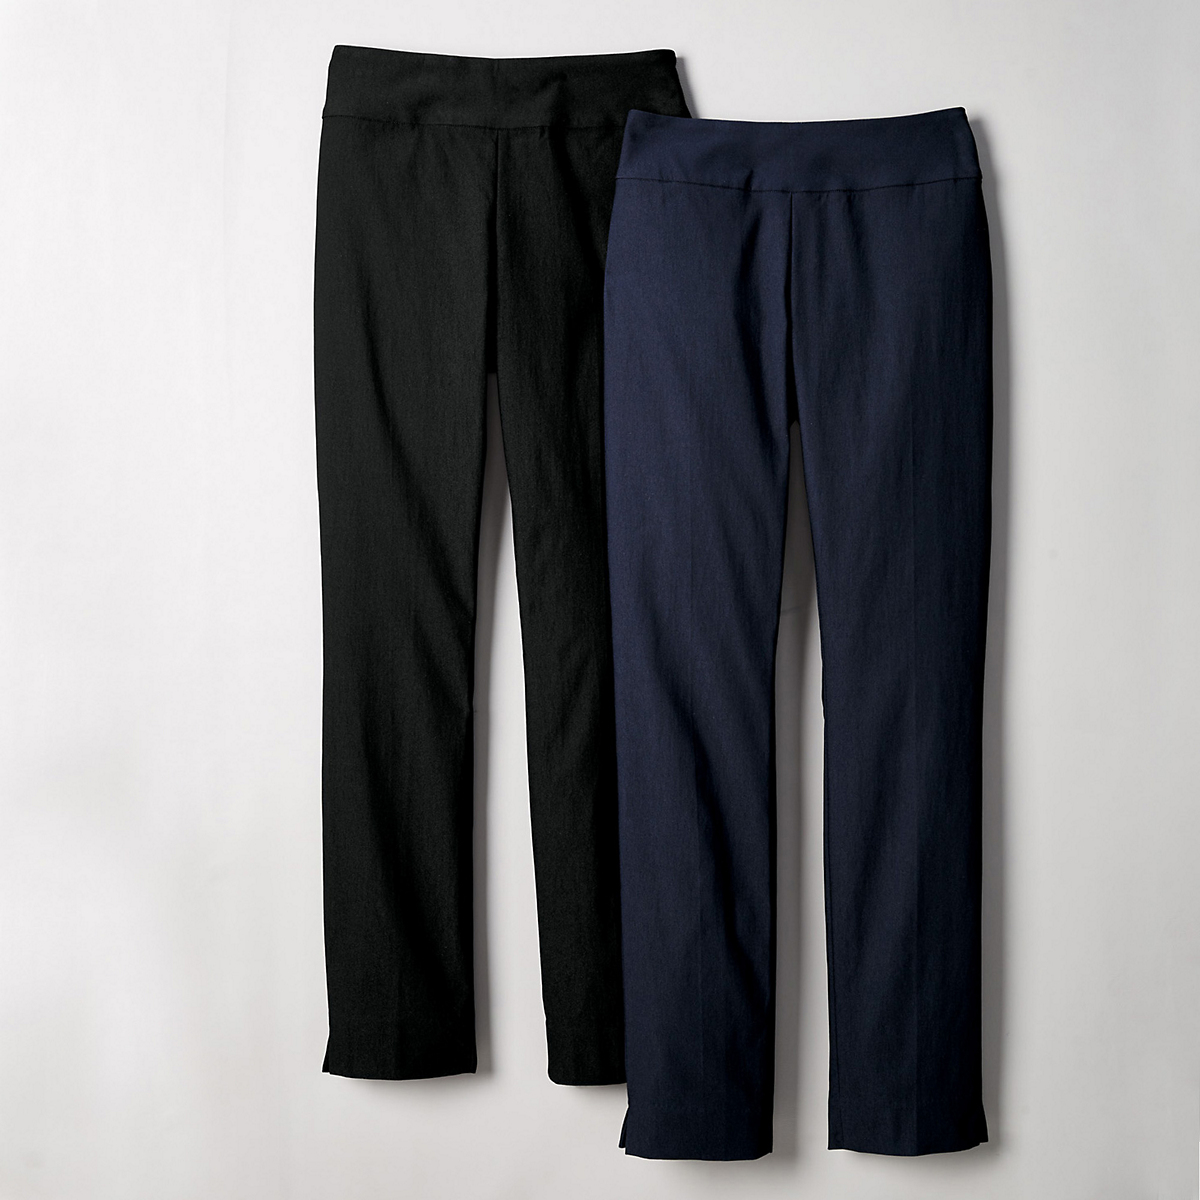 Nic + Zoe Wonderstretch Slim Leg Pants